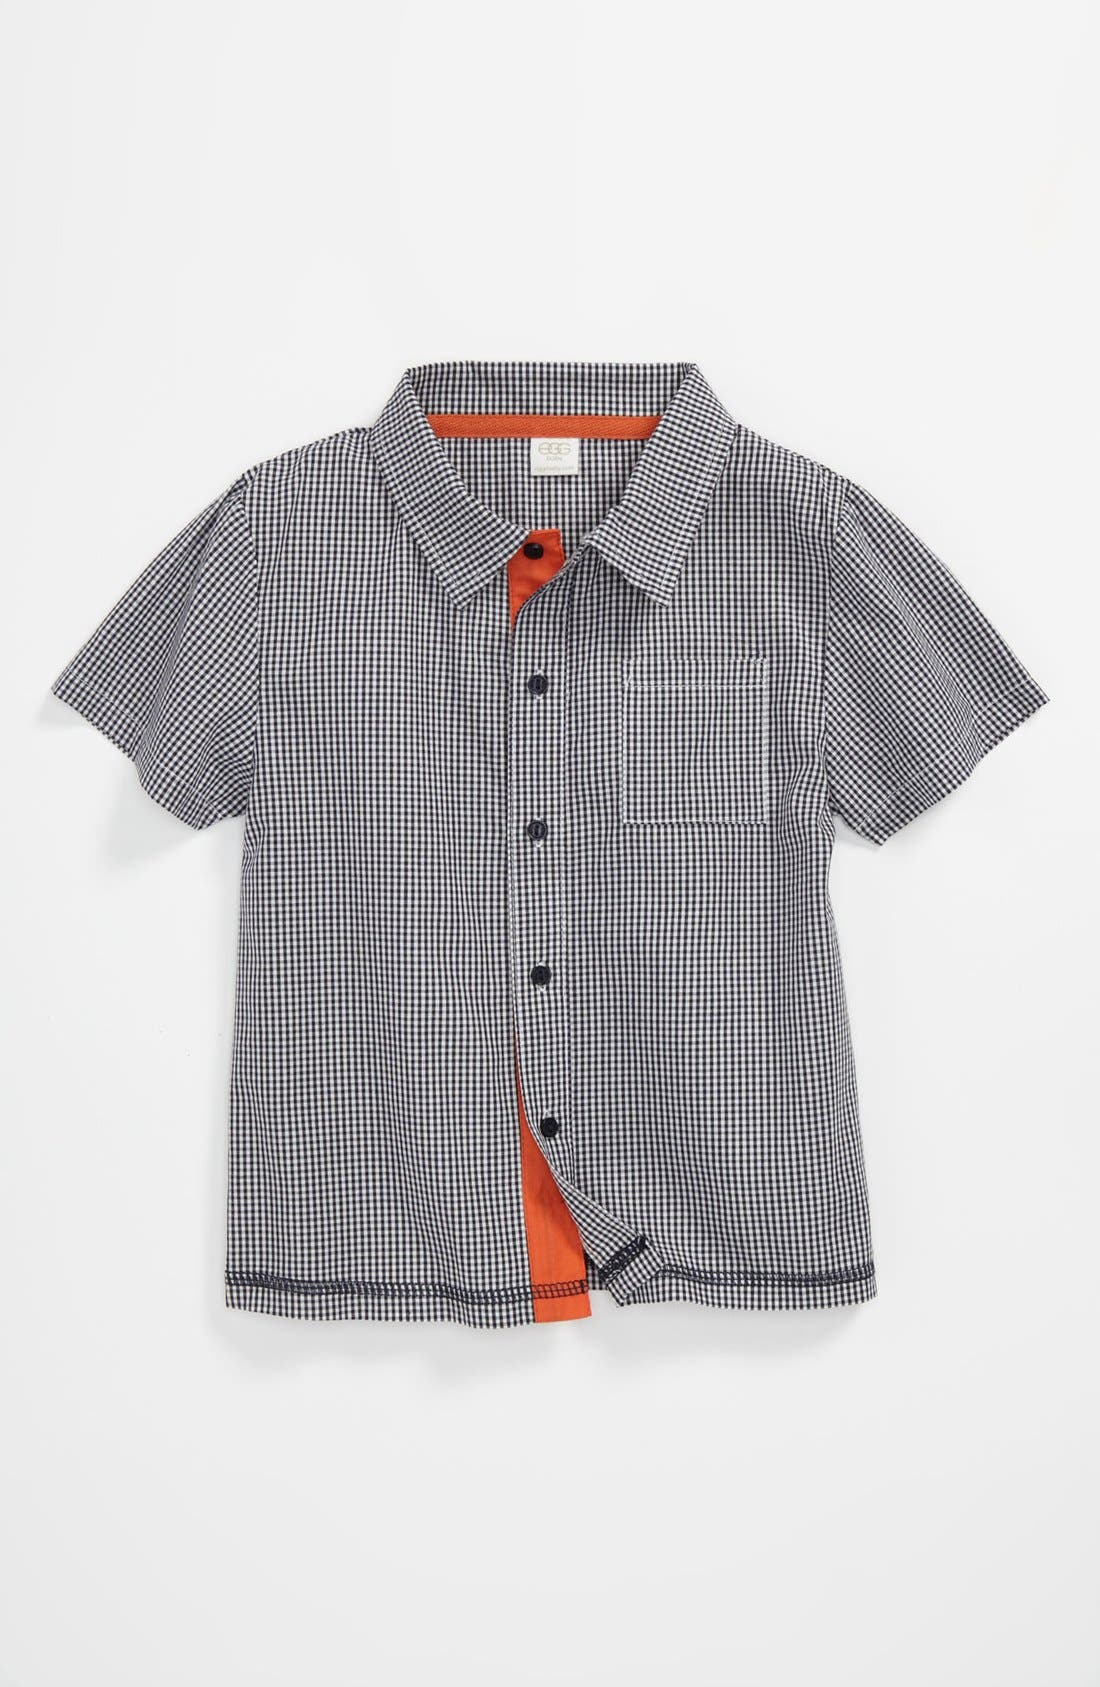 Alternate Image 1 Selected - egg by susan lazar Woven Shirt (Baby)